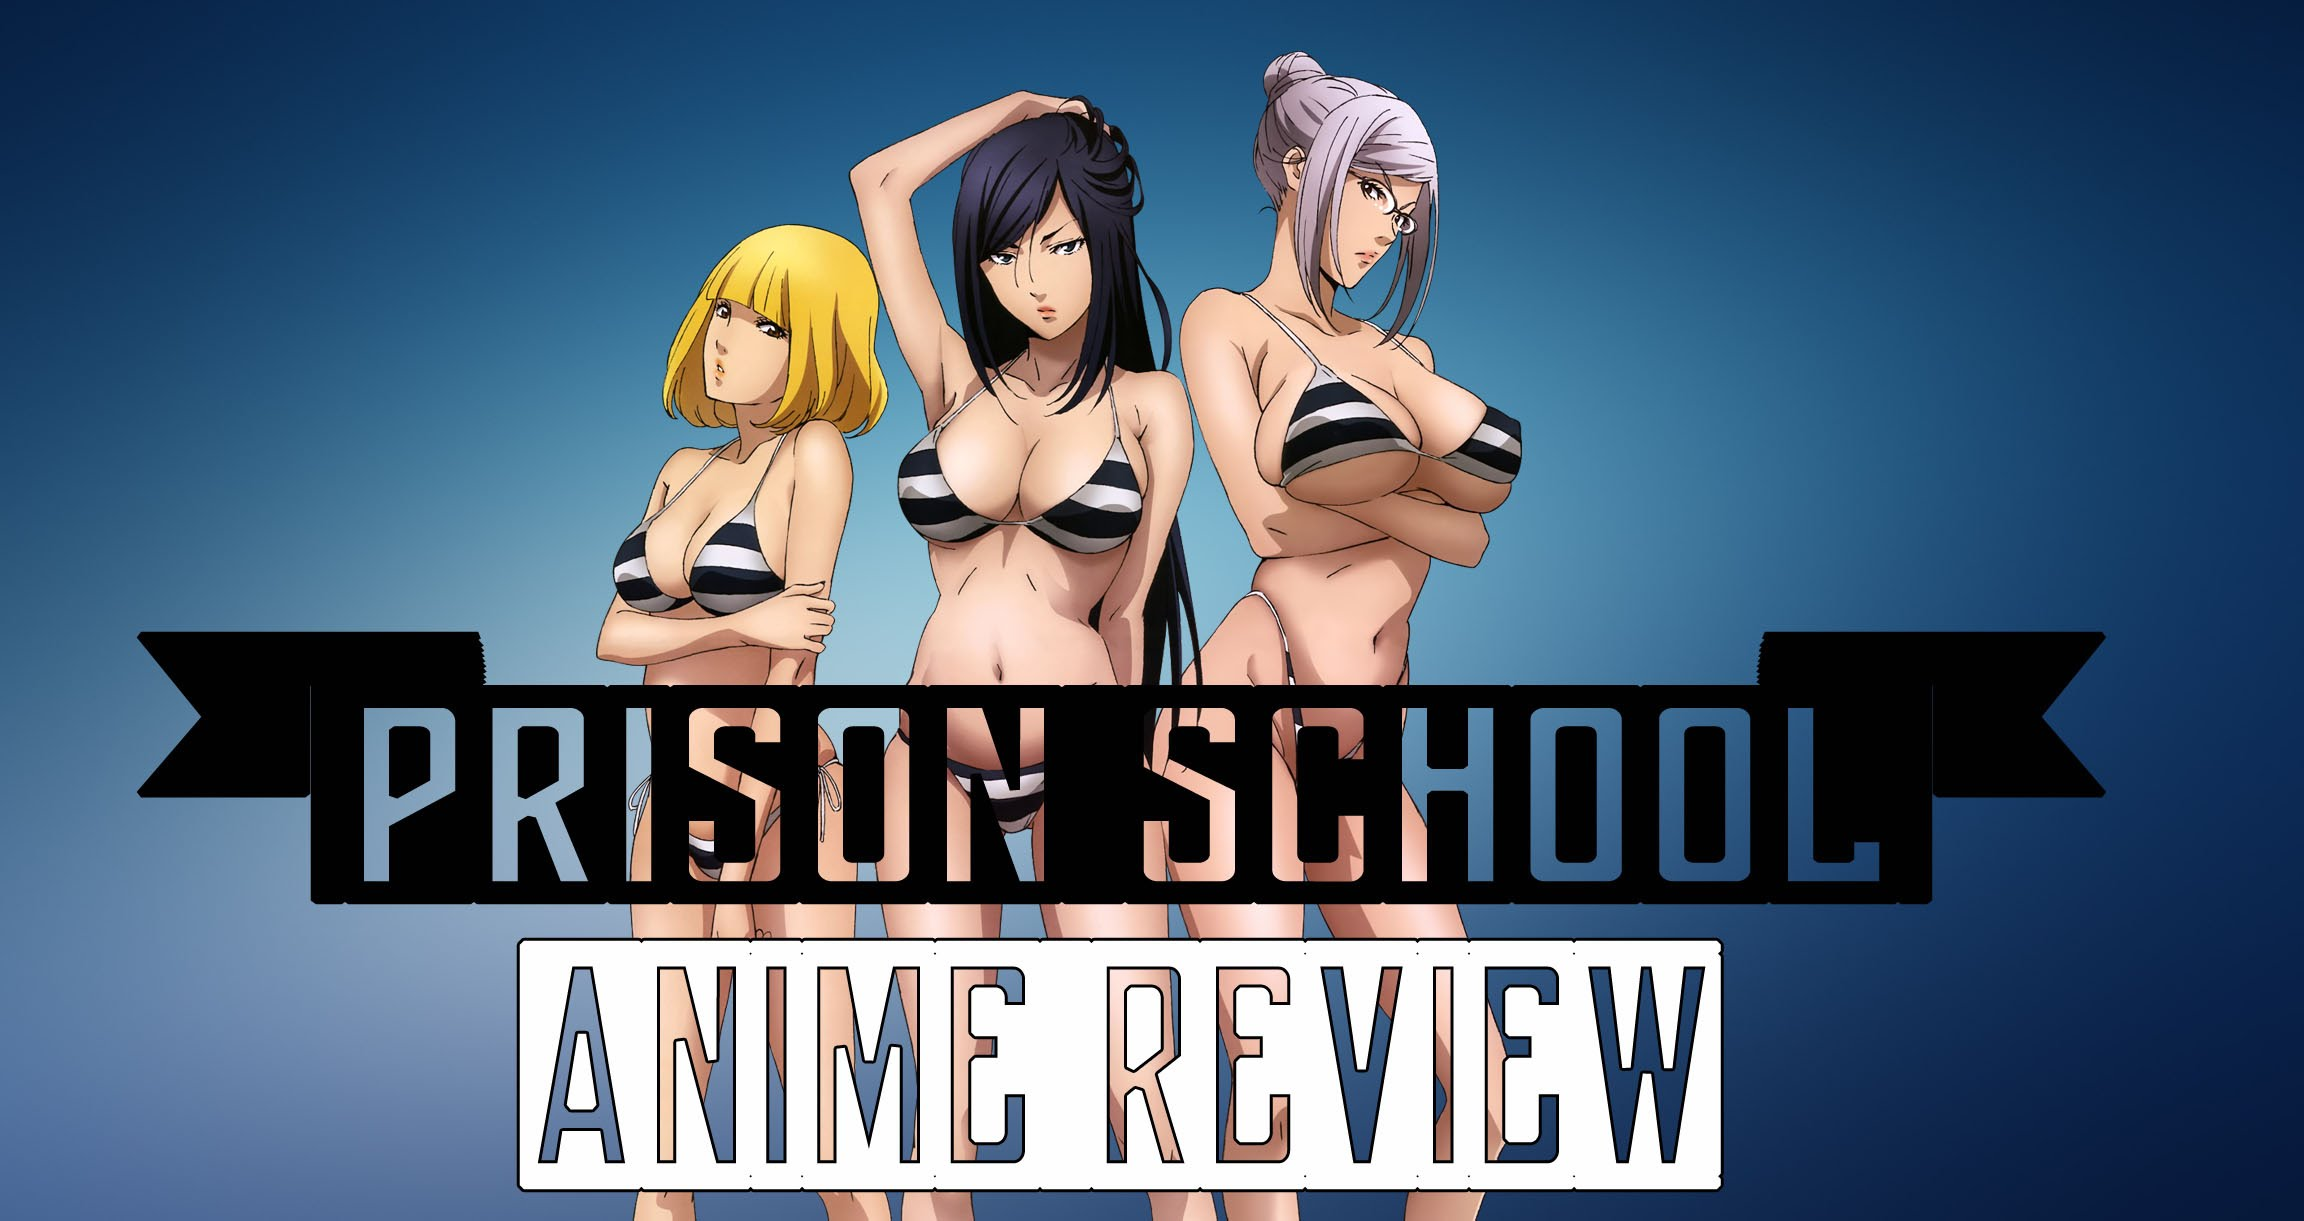 Nice Images Collection: Prison School Desktop Wallpapers